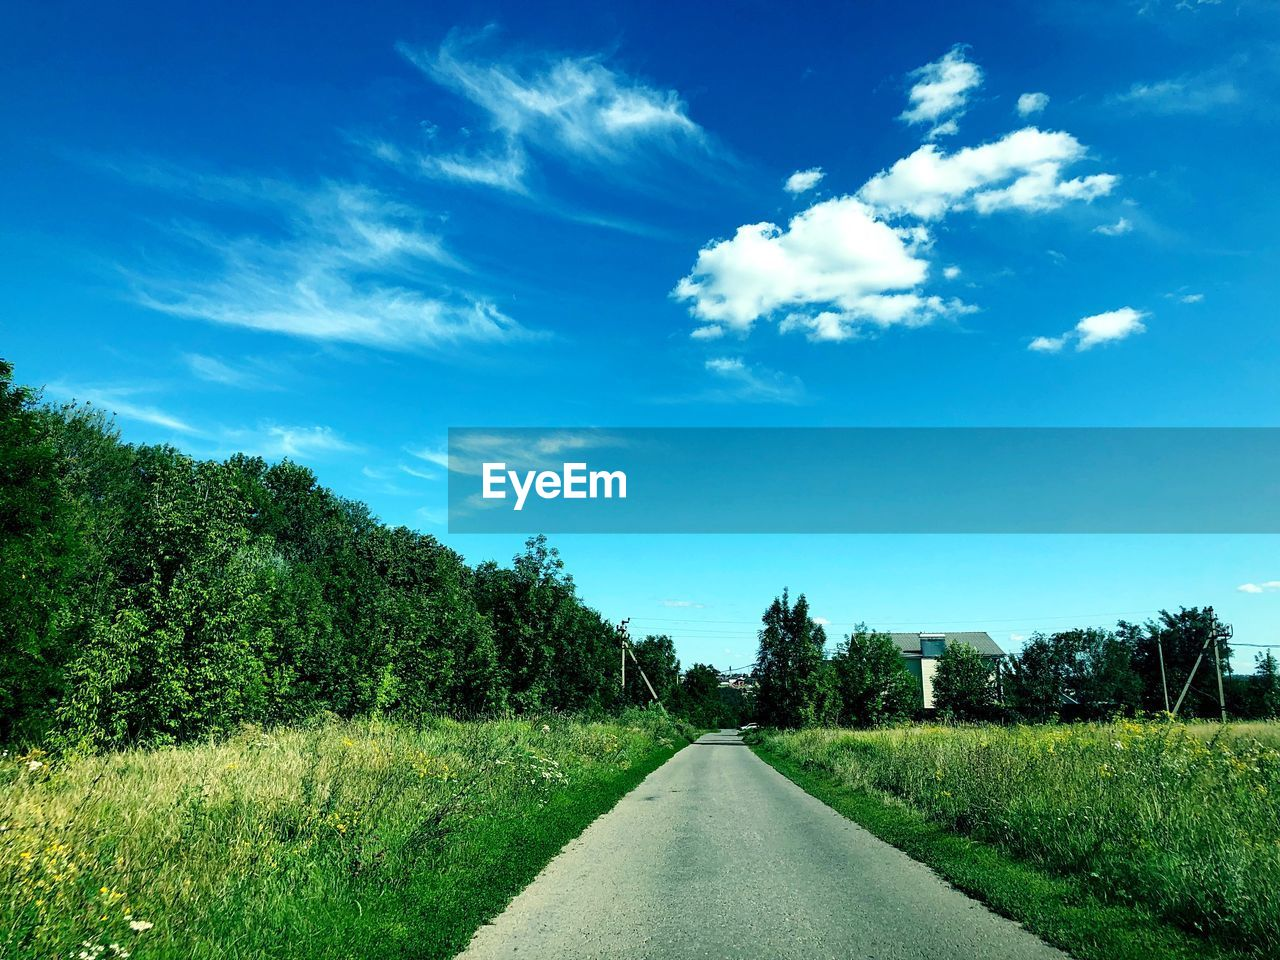 plant, sky, the way forward, direction, tree, road, transportation, cloud - sky, beauty in nature, diminishing perspective, nature, green color, no people, tranquil scene, day, tranquility, grass, land, growth, landscape, outdoors, long